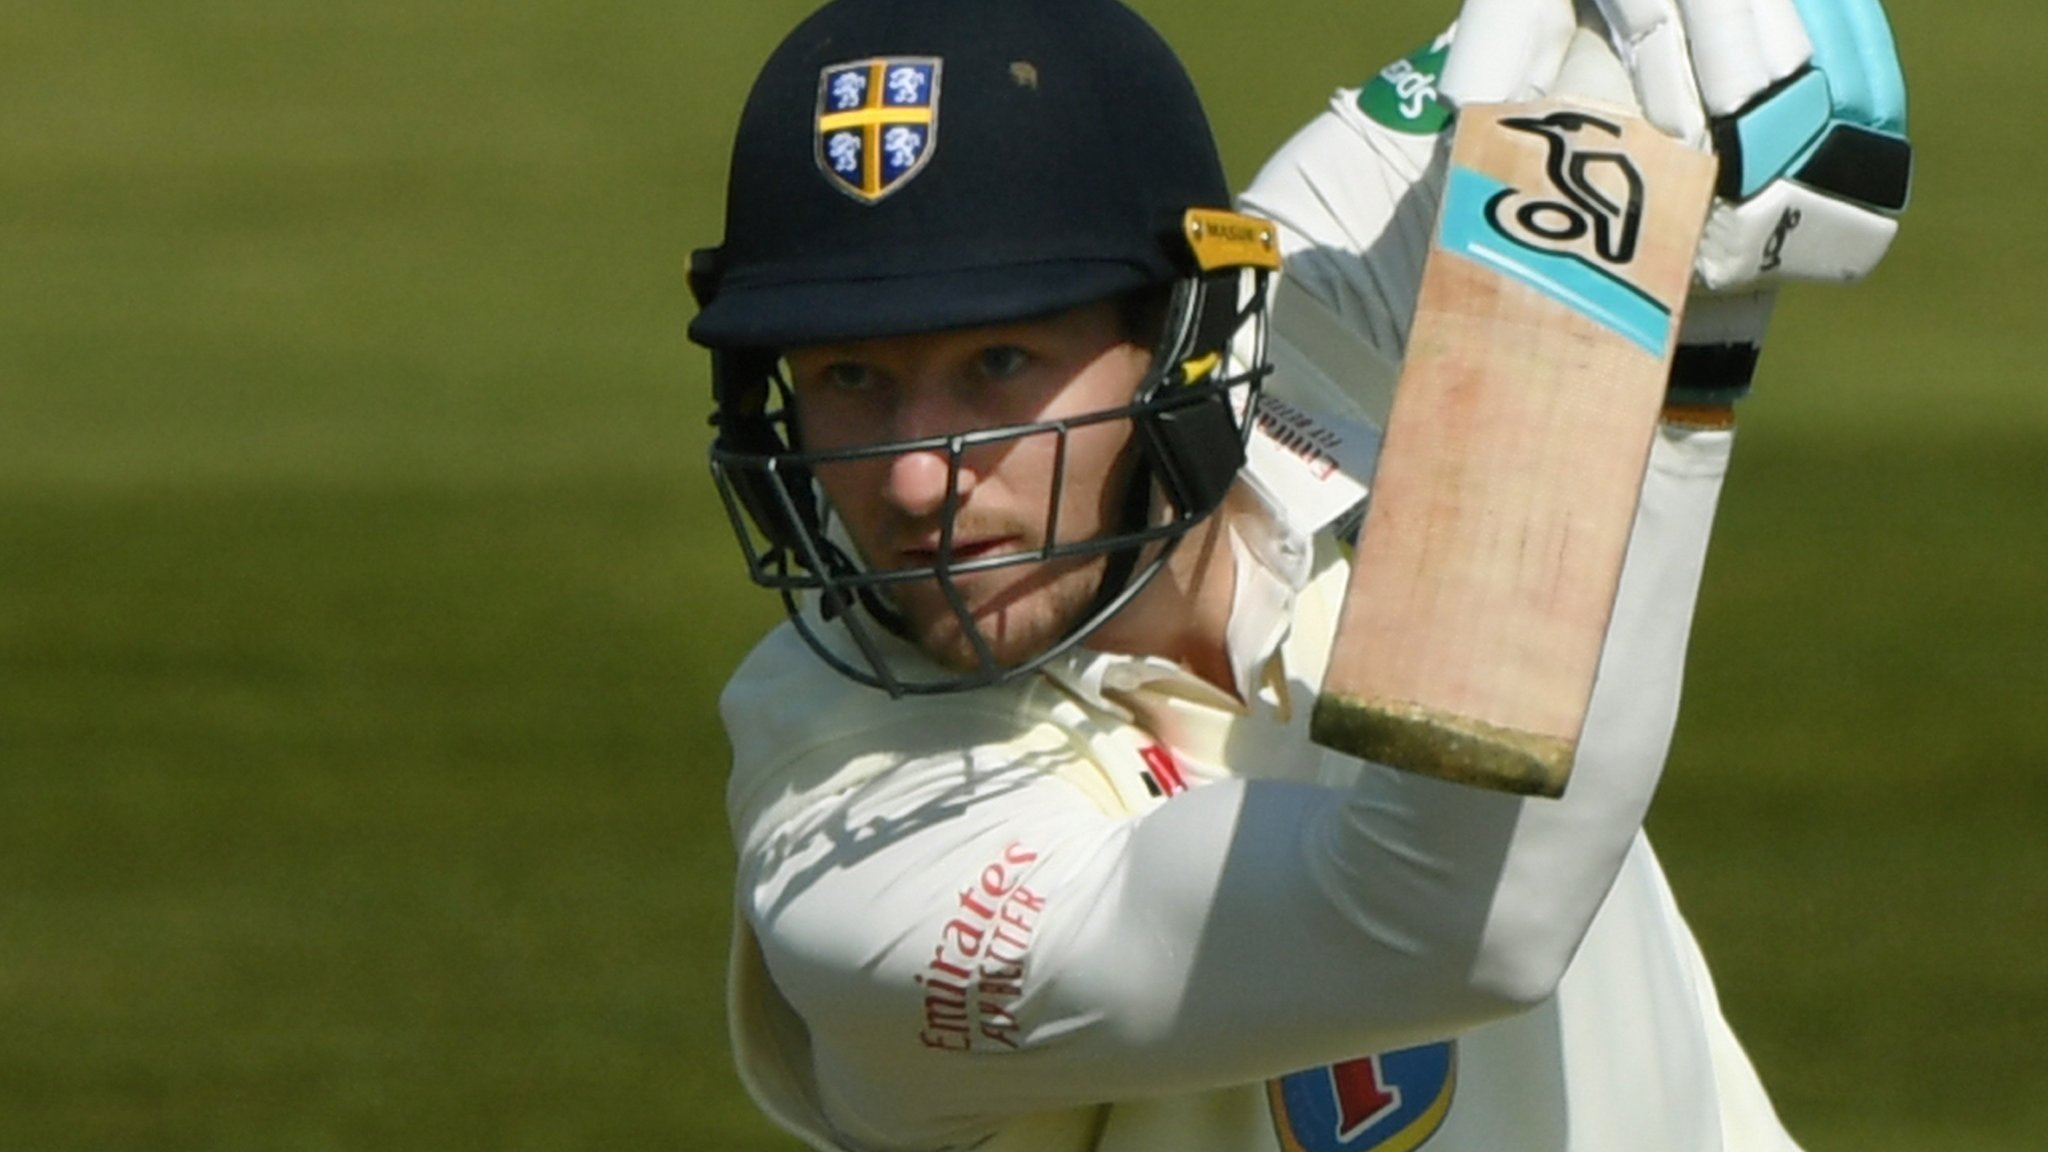 One-Day Cup: Cameron Bancroft hits 151 not out as Durham beat Northants